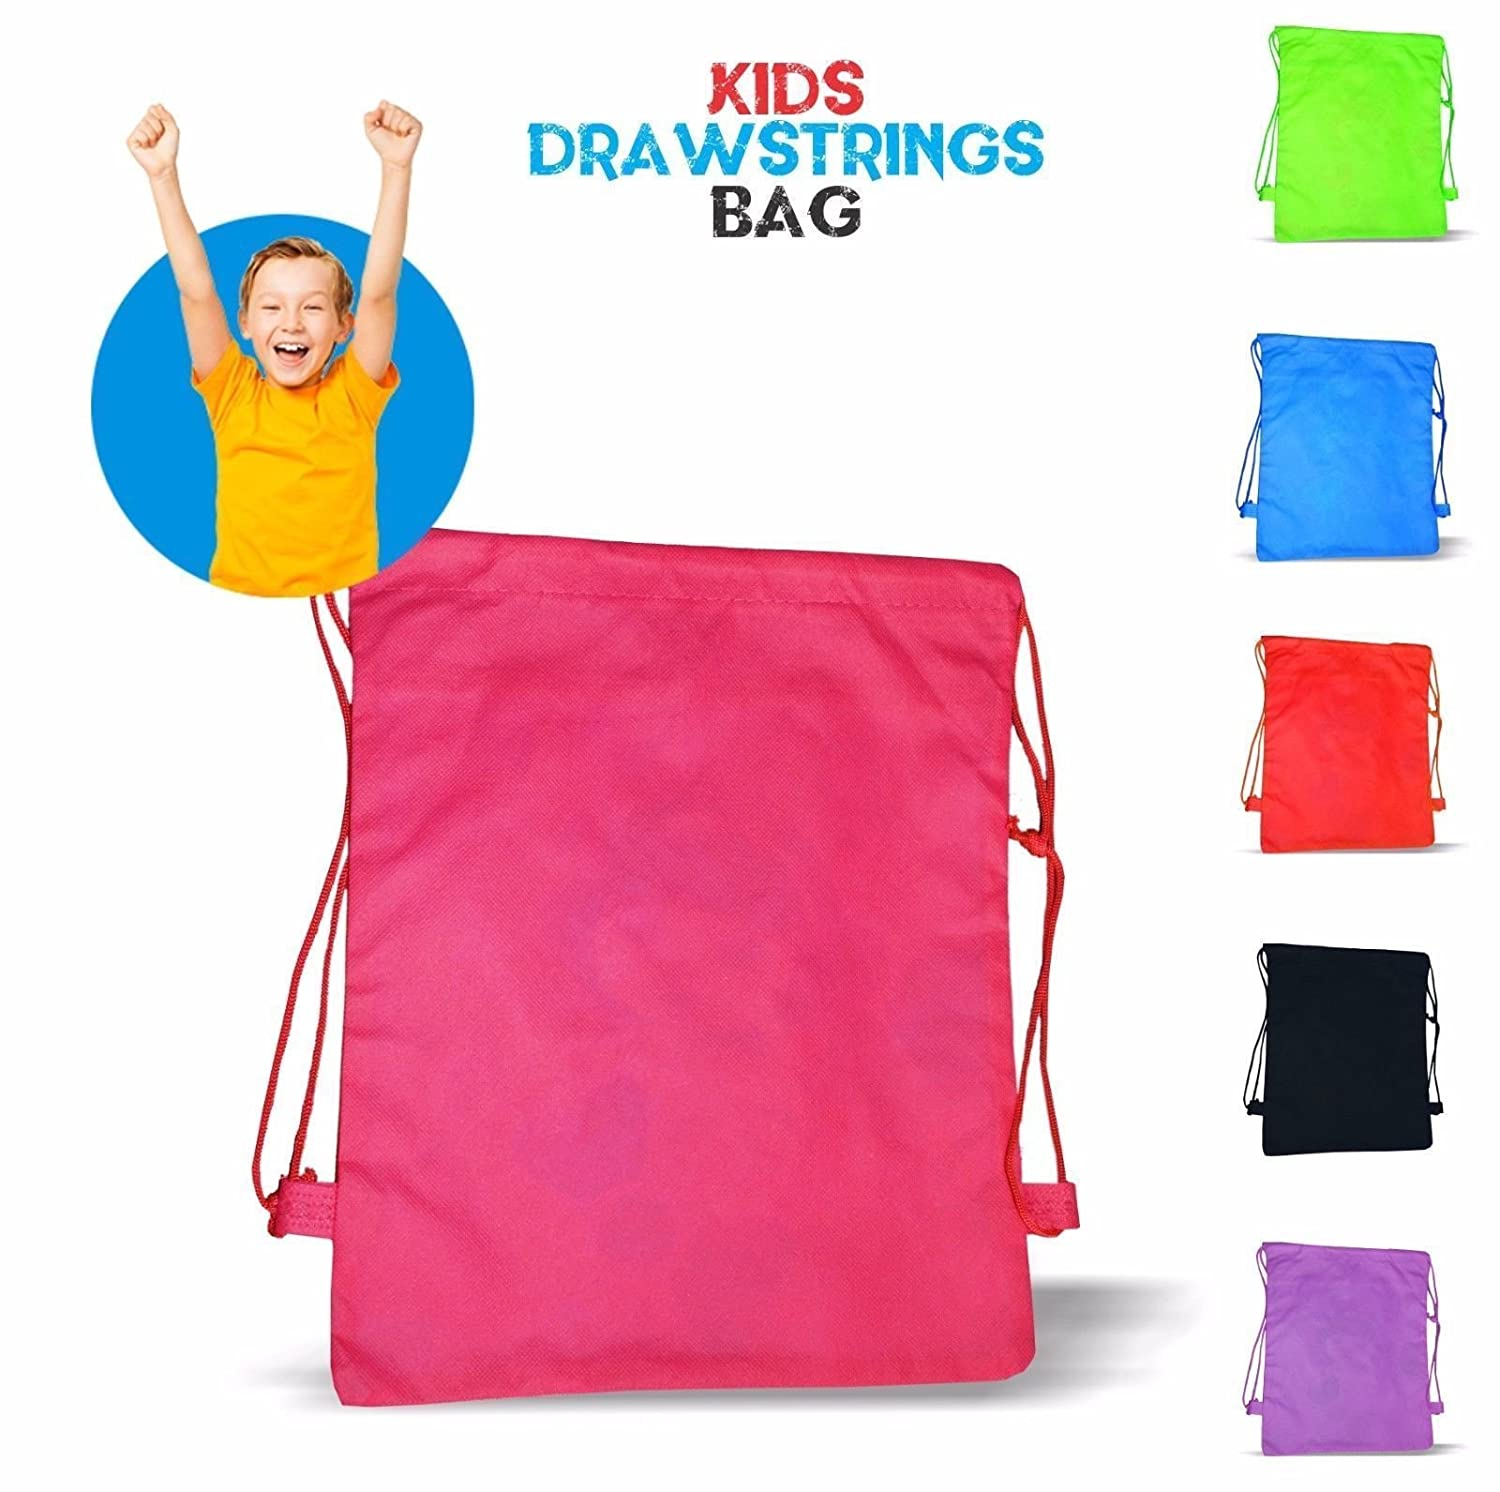 New Styl-Kids New Plain Bag Gym Bag Pump Bag Sports School Drawstring Boys Girls (Purple) Thai Mad